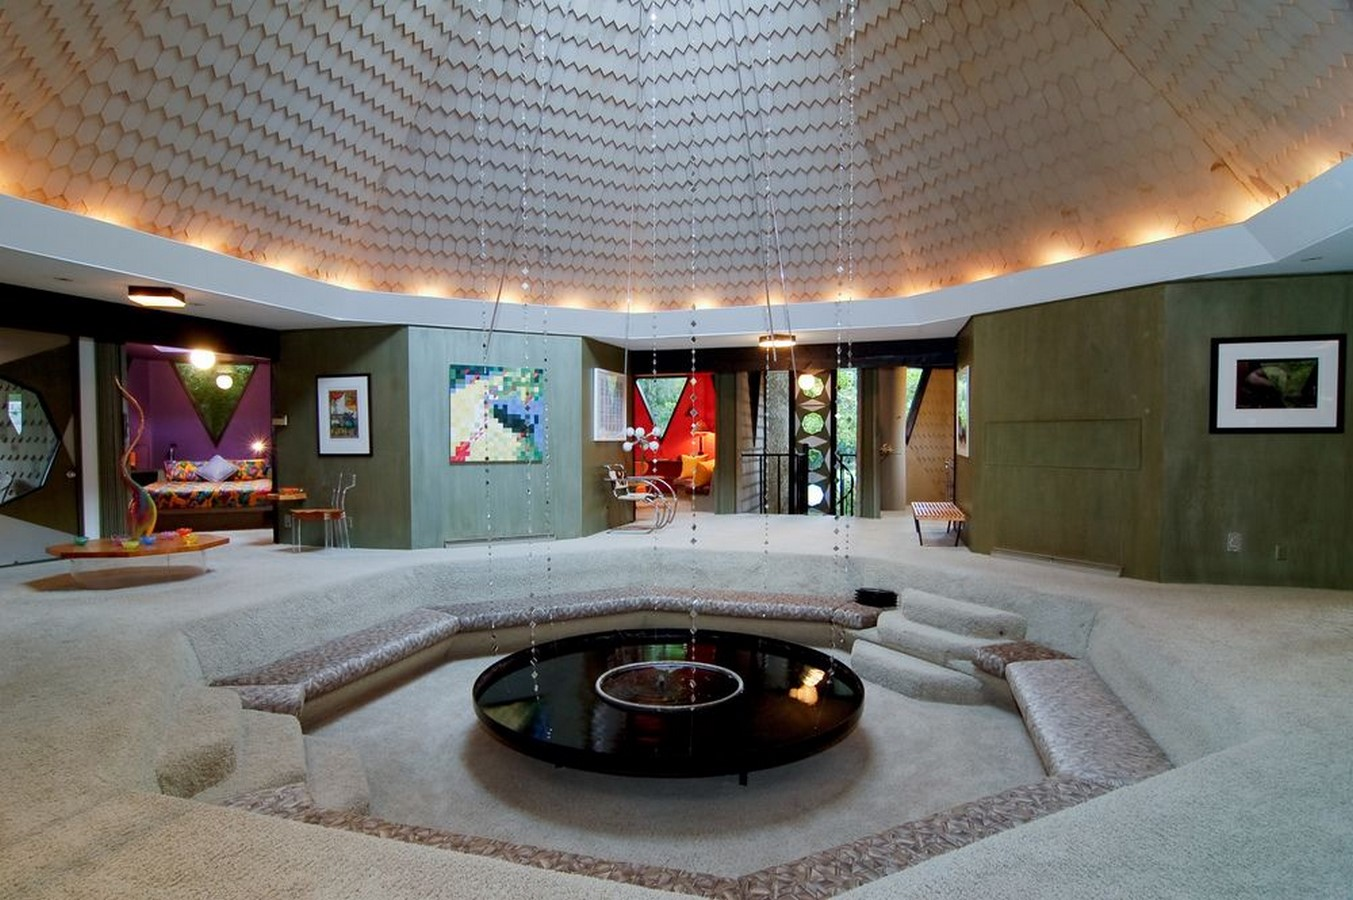 30 Examples of a conversation pit - Sheet12